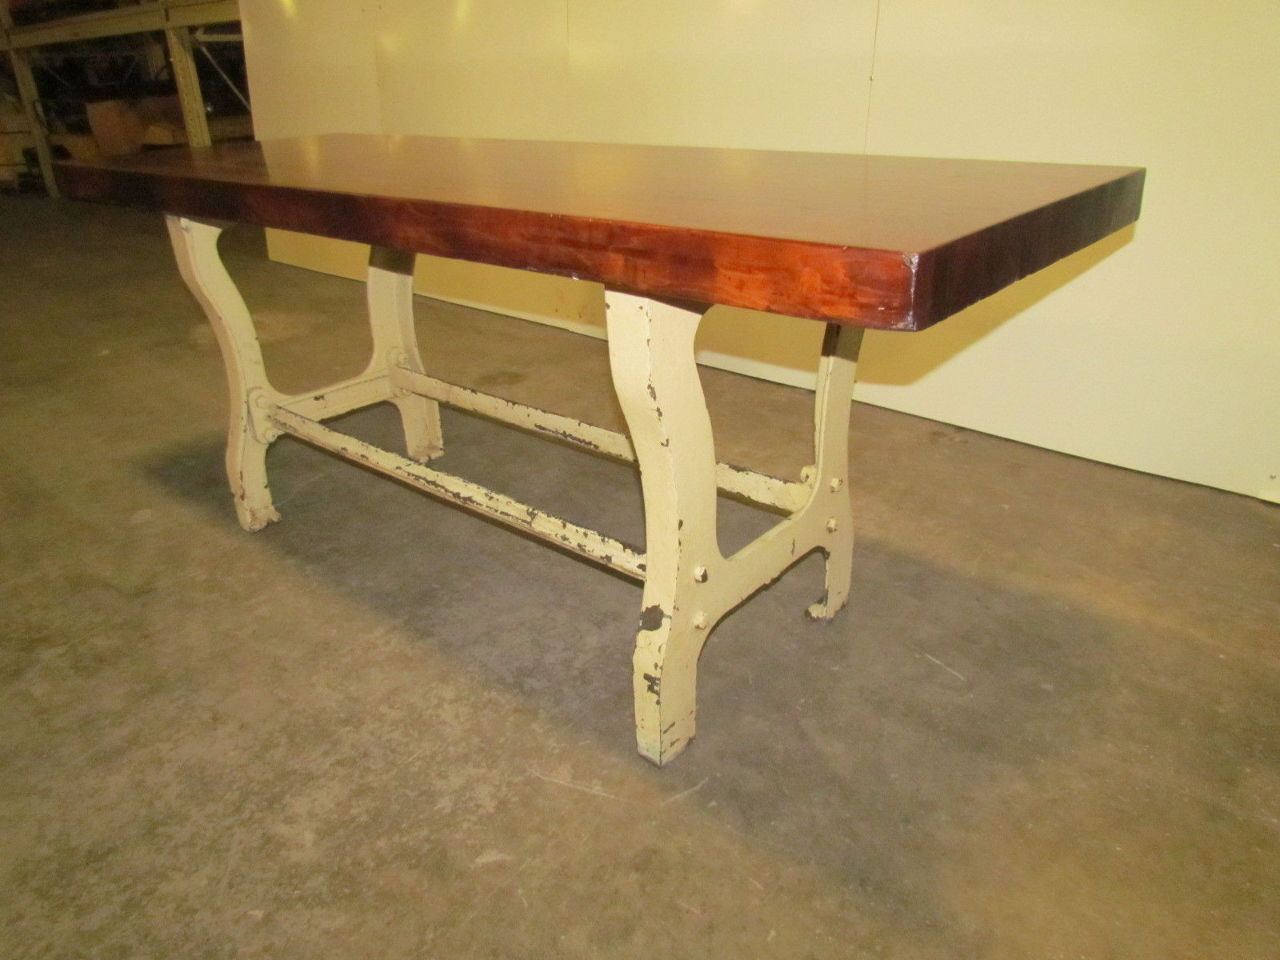 Vintage antique industrial 3 butcher block dining kitchen table cast iron legs ebay - Kitchen table bases ...